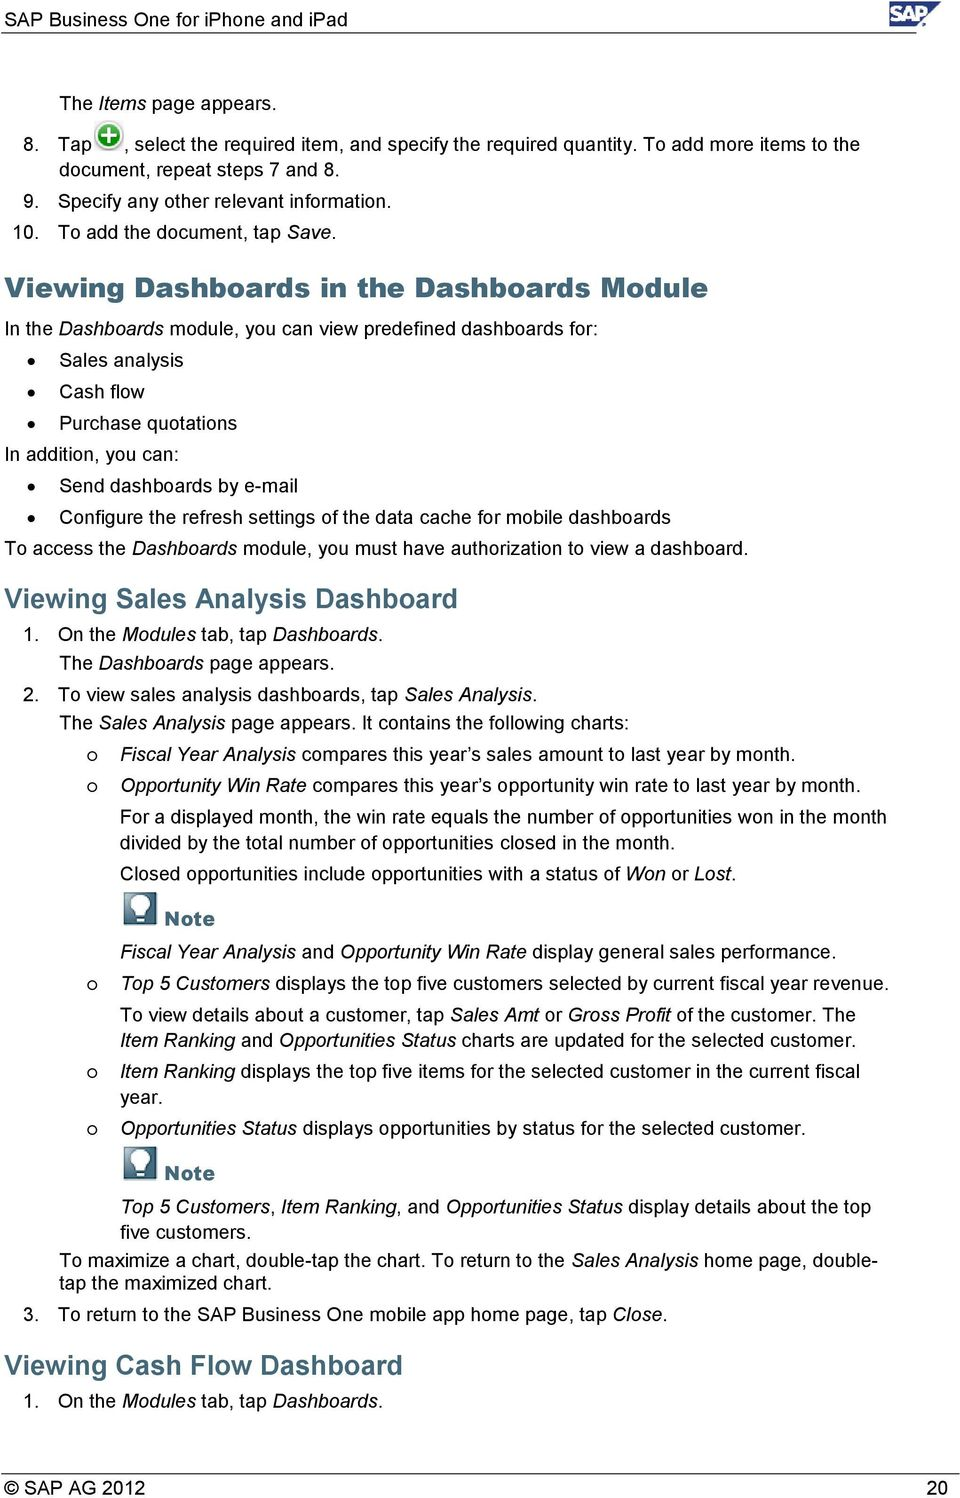 Viewing Dashboards in the Dashboards Module In the Dashboards module, you can view predefined dashboards for: Sales analysis Cash flow Purchase quotations In addition, you can: Send dashboards by